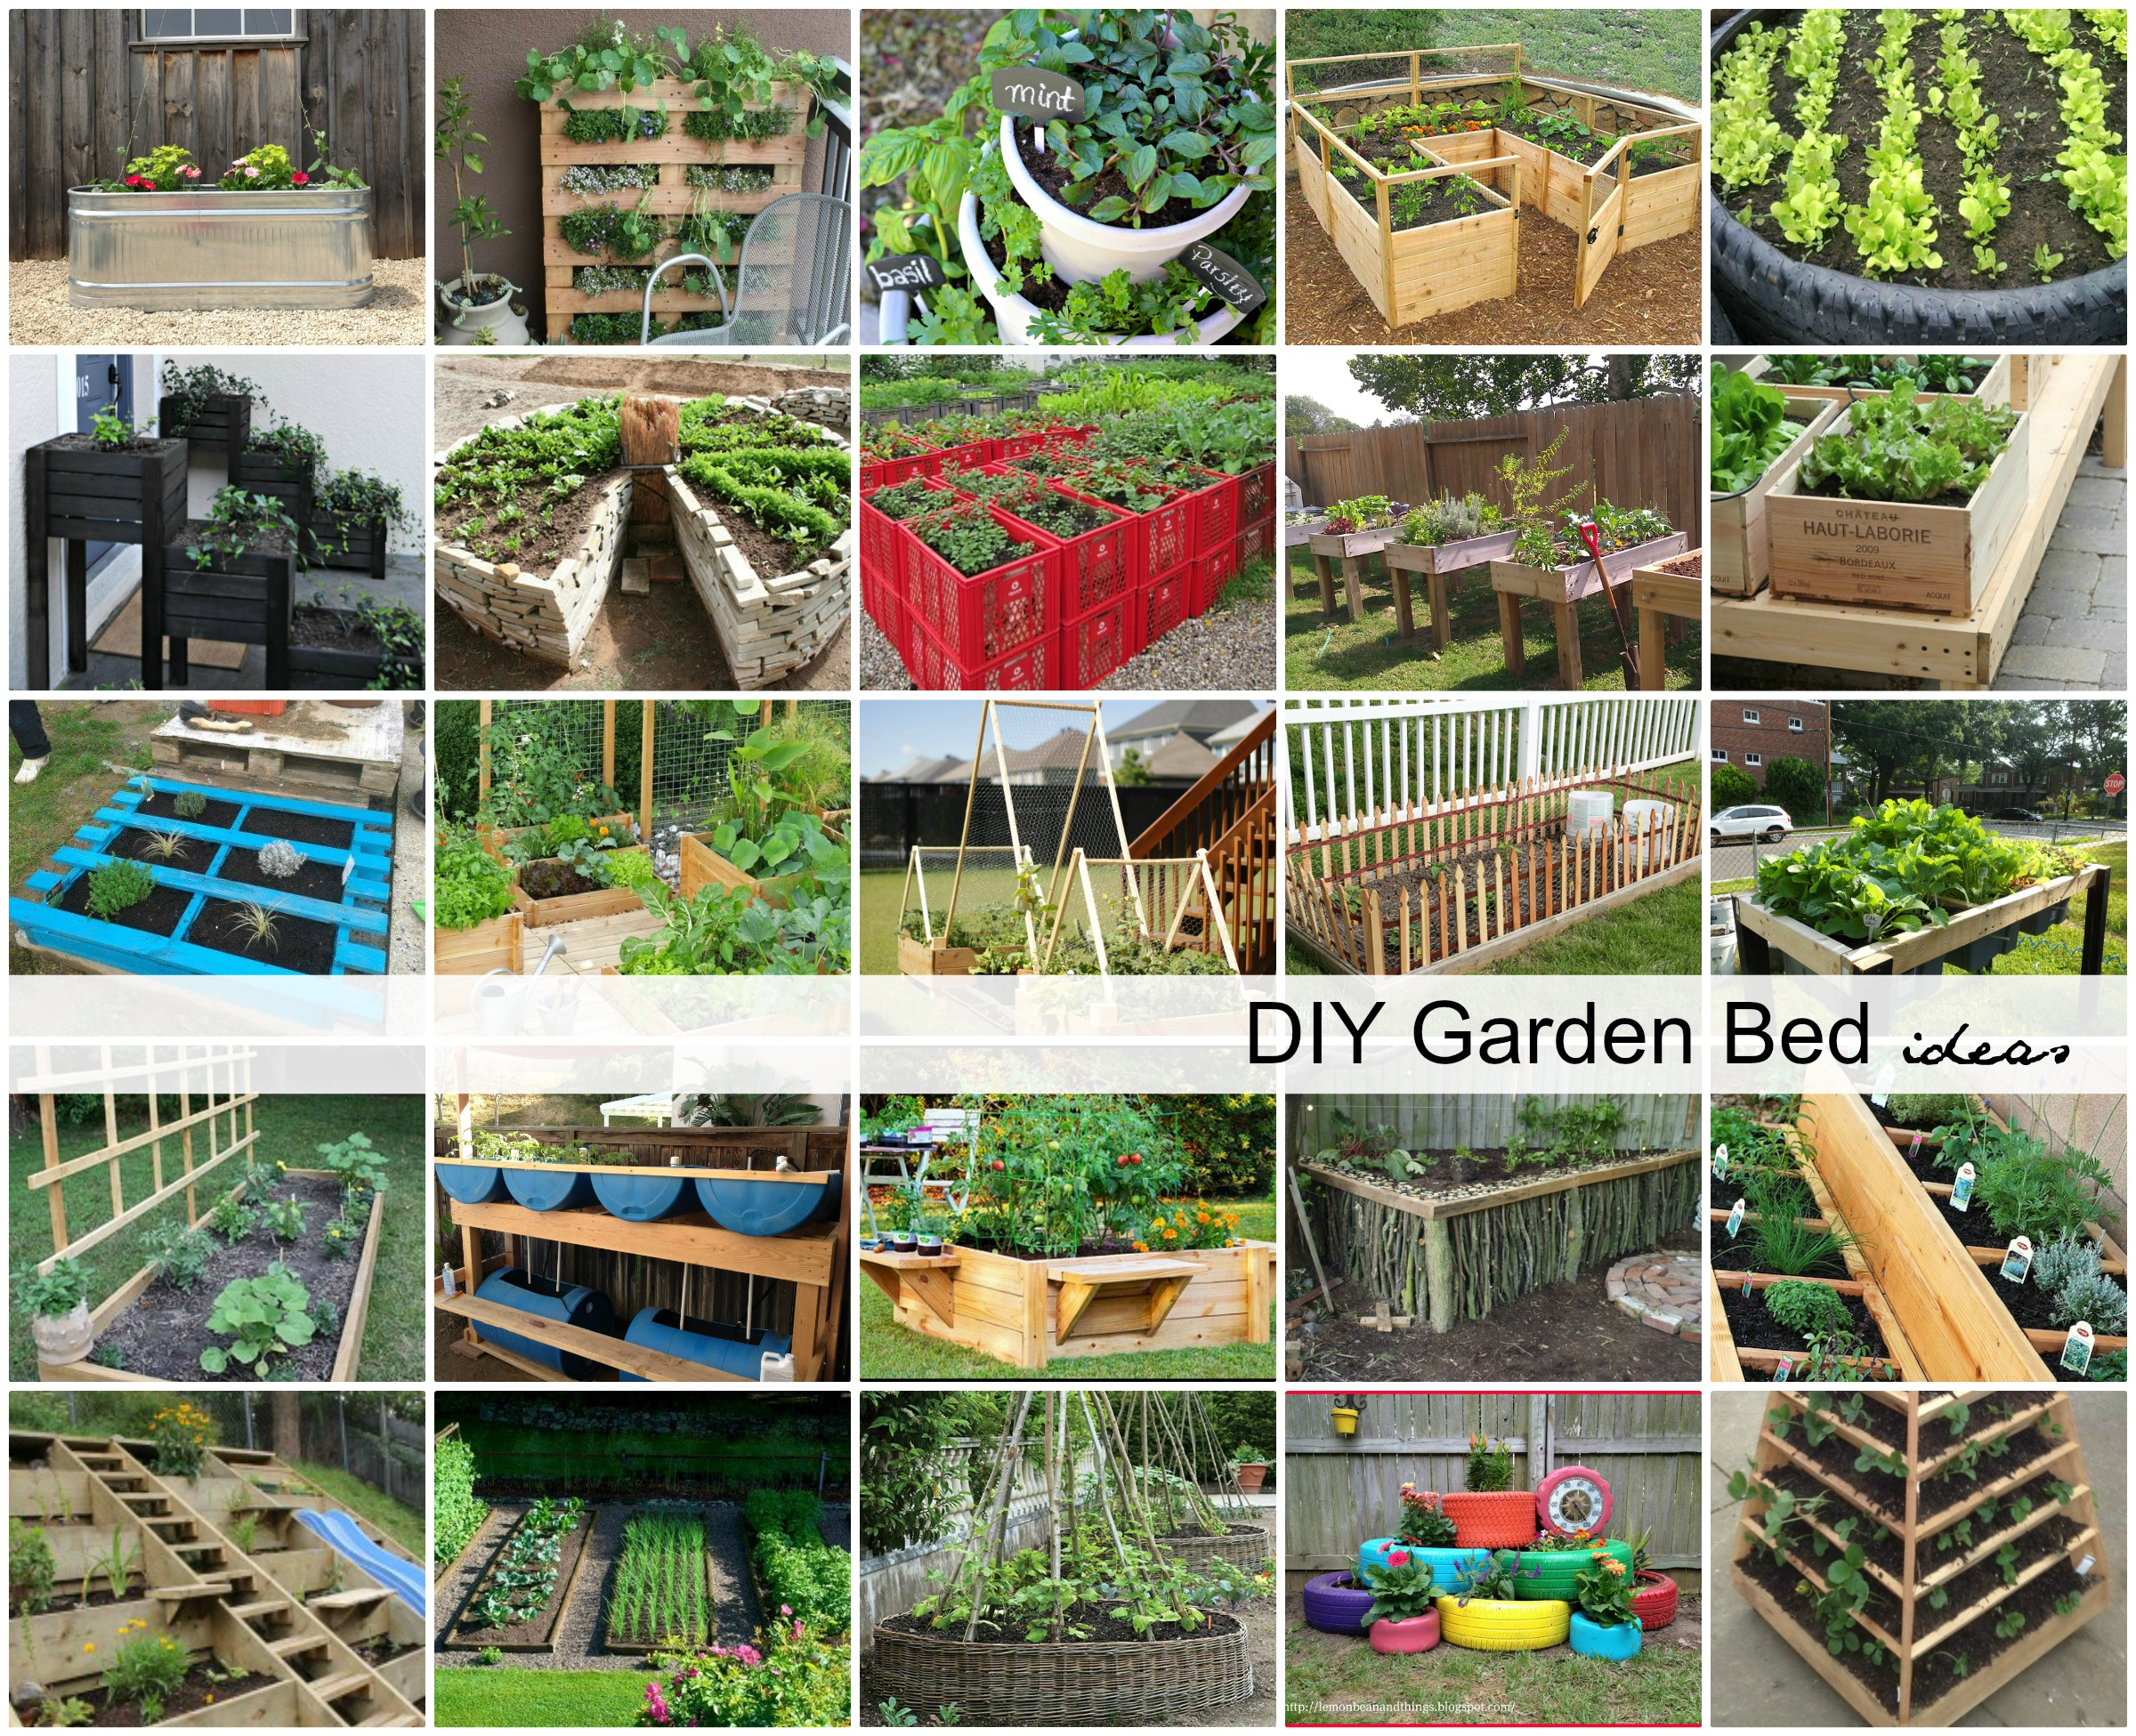 garden design with diy garden bed ideas the idea room with ideas for backyard landscaping from